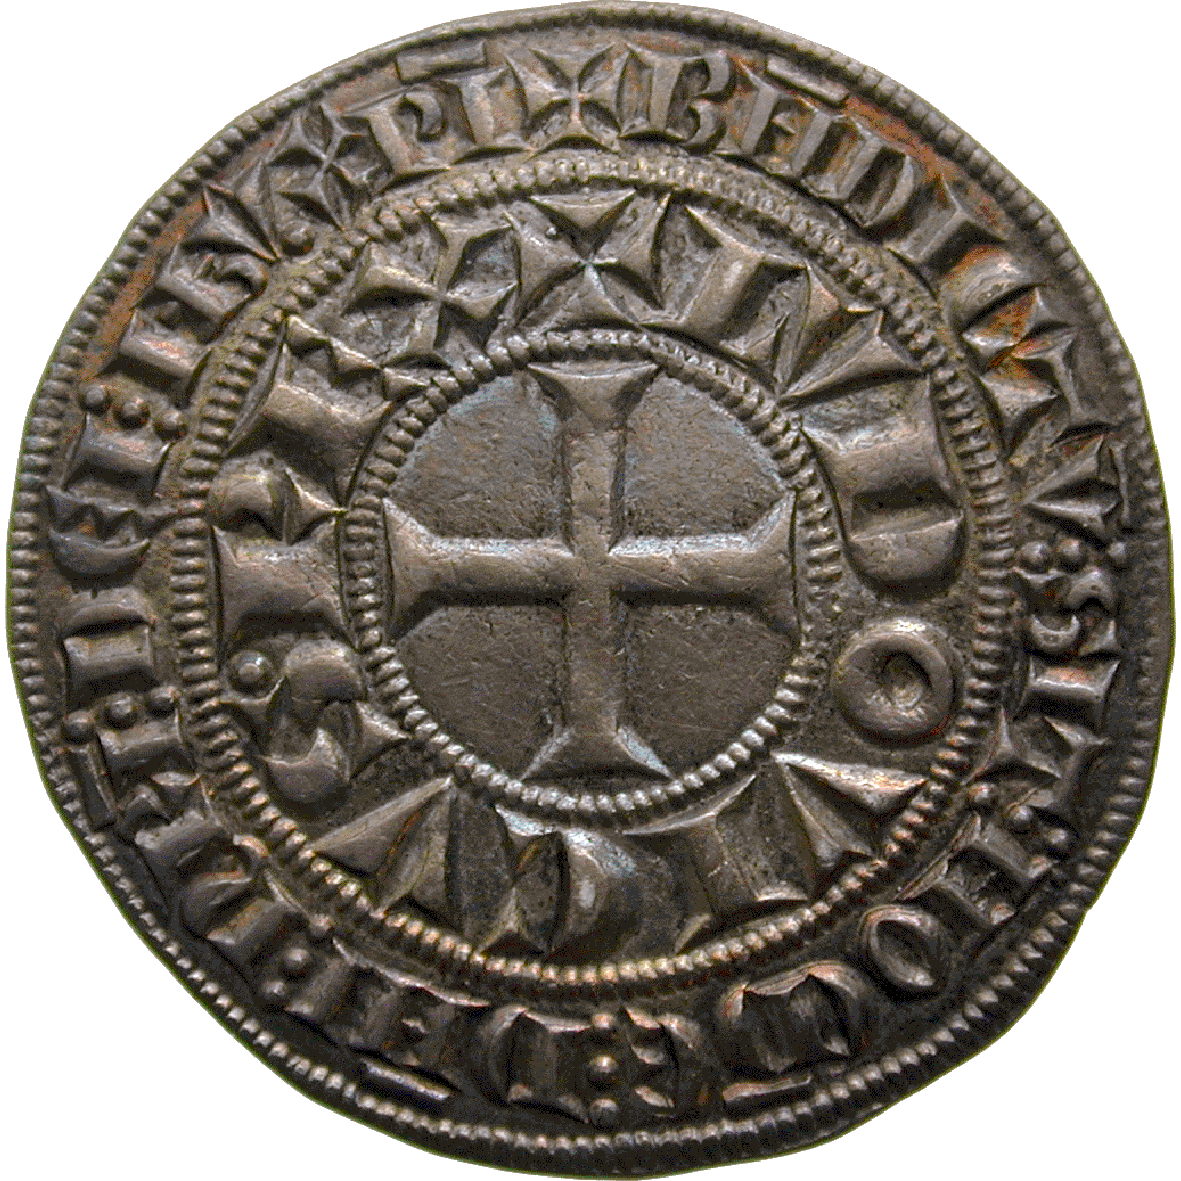 Kingdom of France, Louis IX, Gros tournois (obverse)